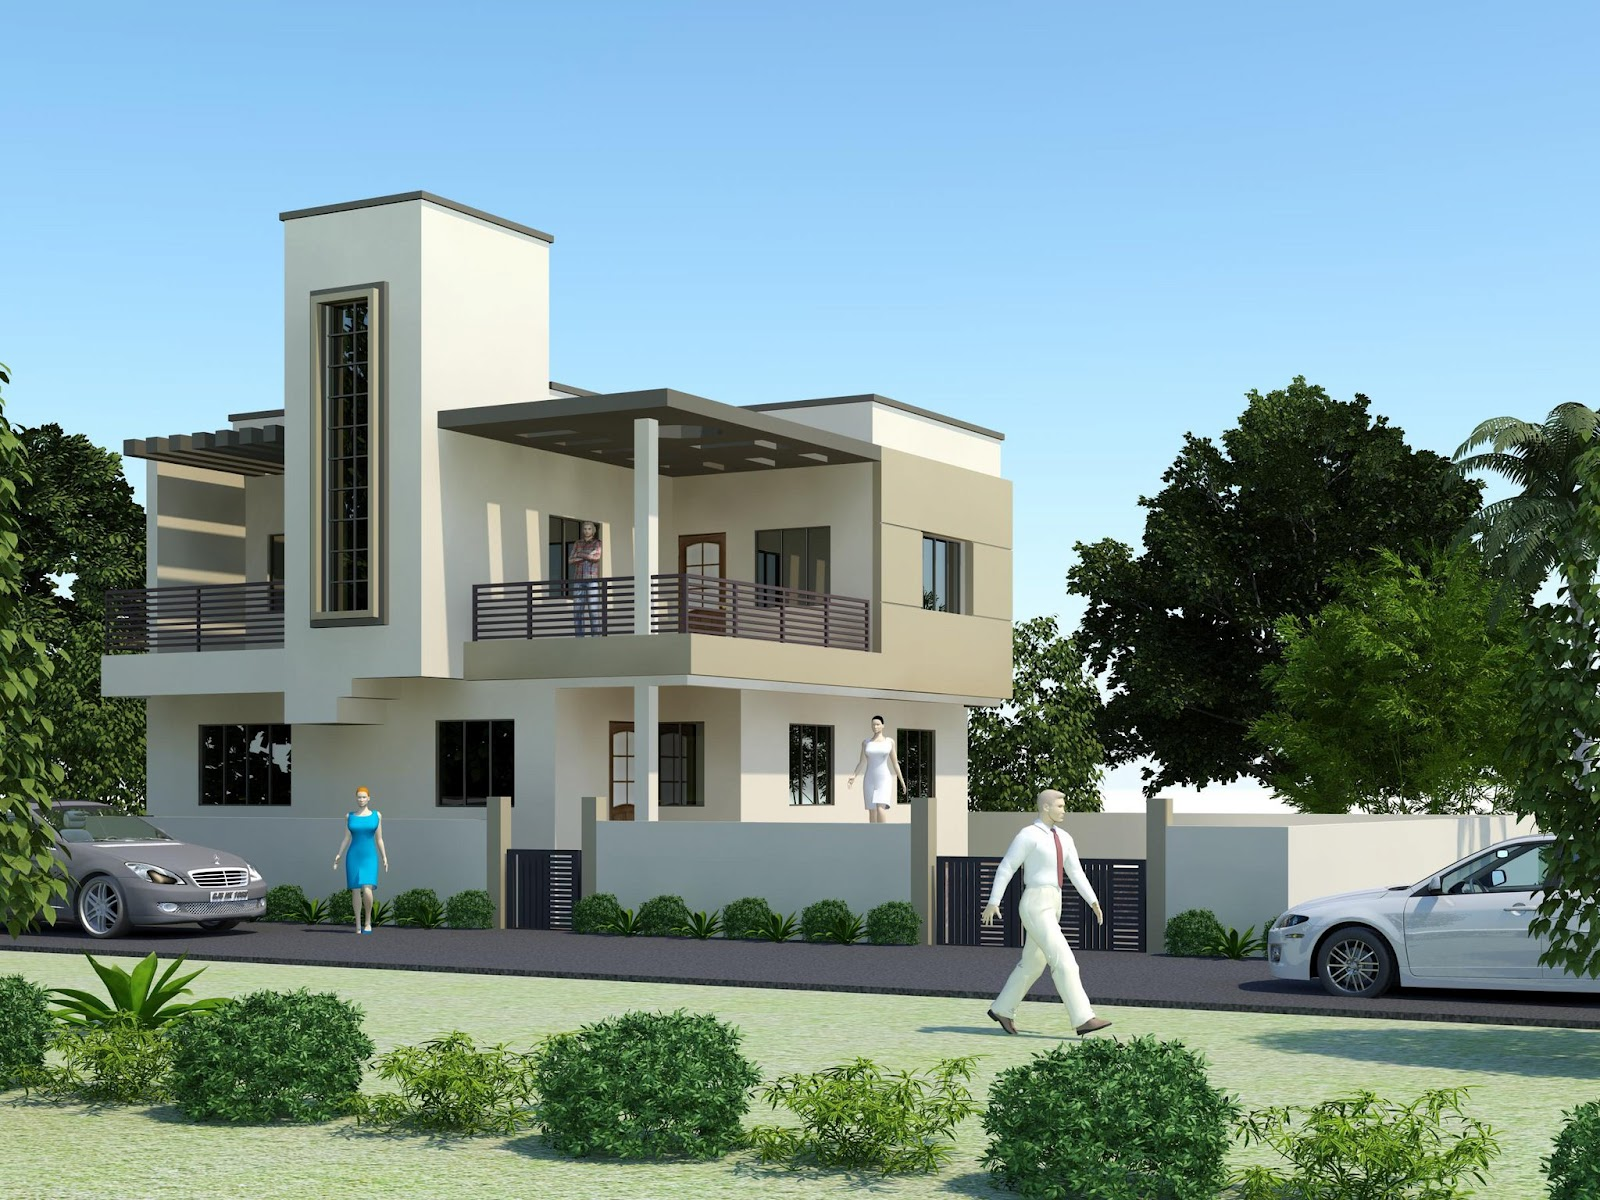 New home designs latest modern homes exterior designs for Home exterior design india residence houses